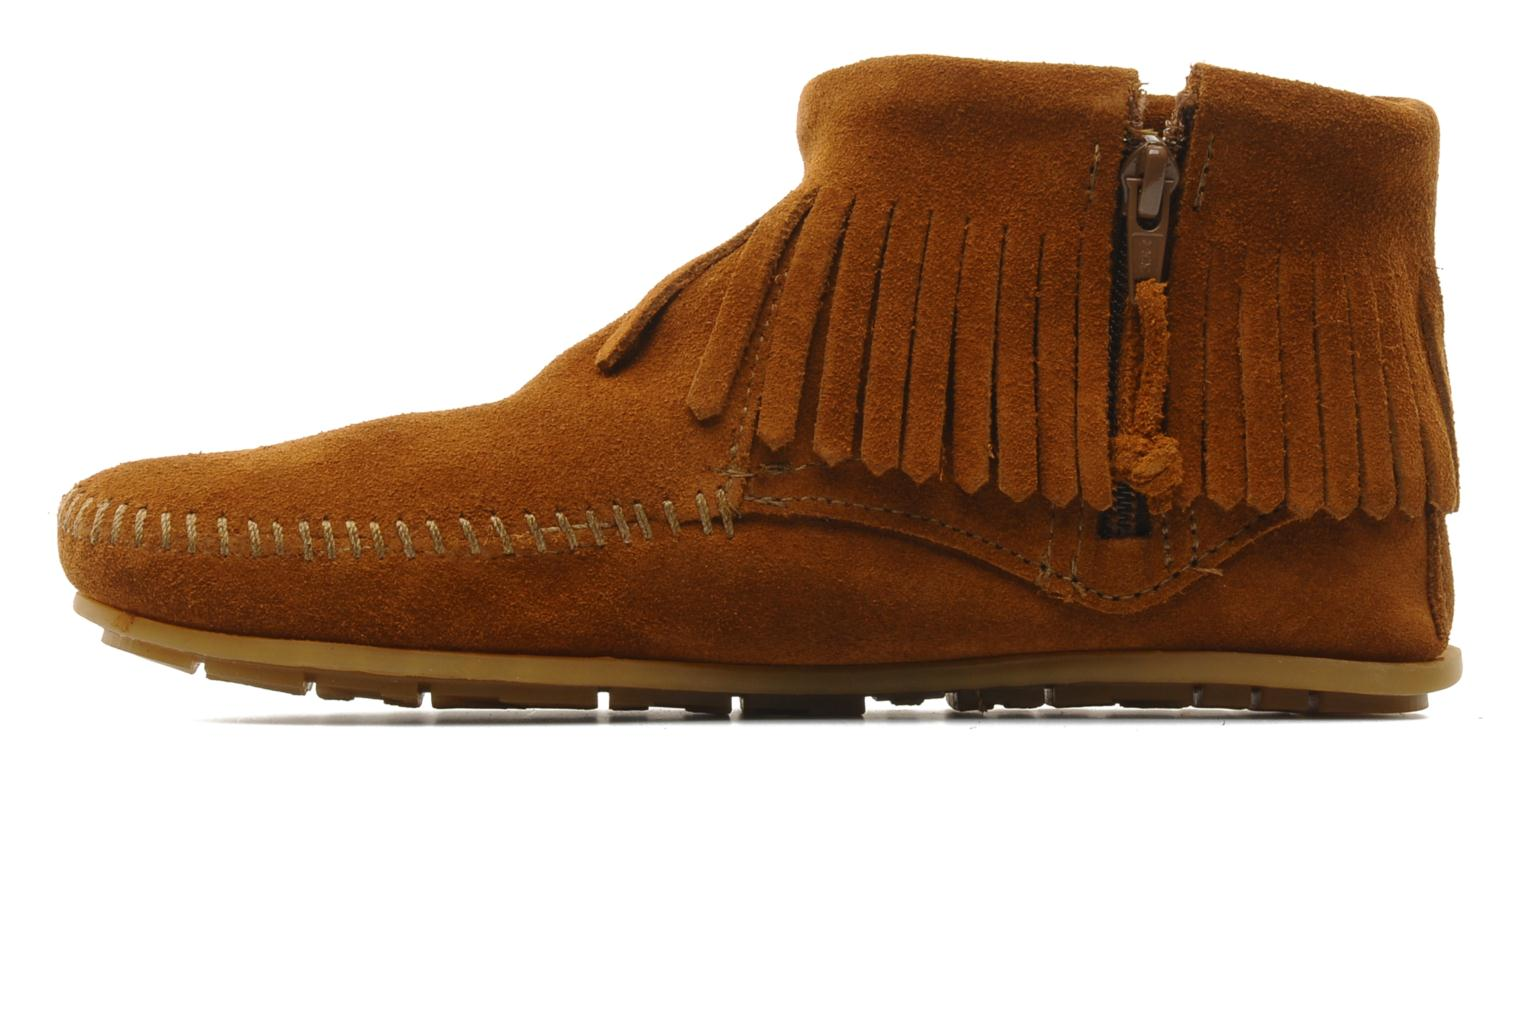 Bottines et boots Minnetonka CONCHOFEATHER BT Marron vue face